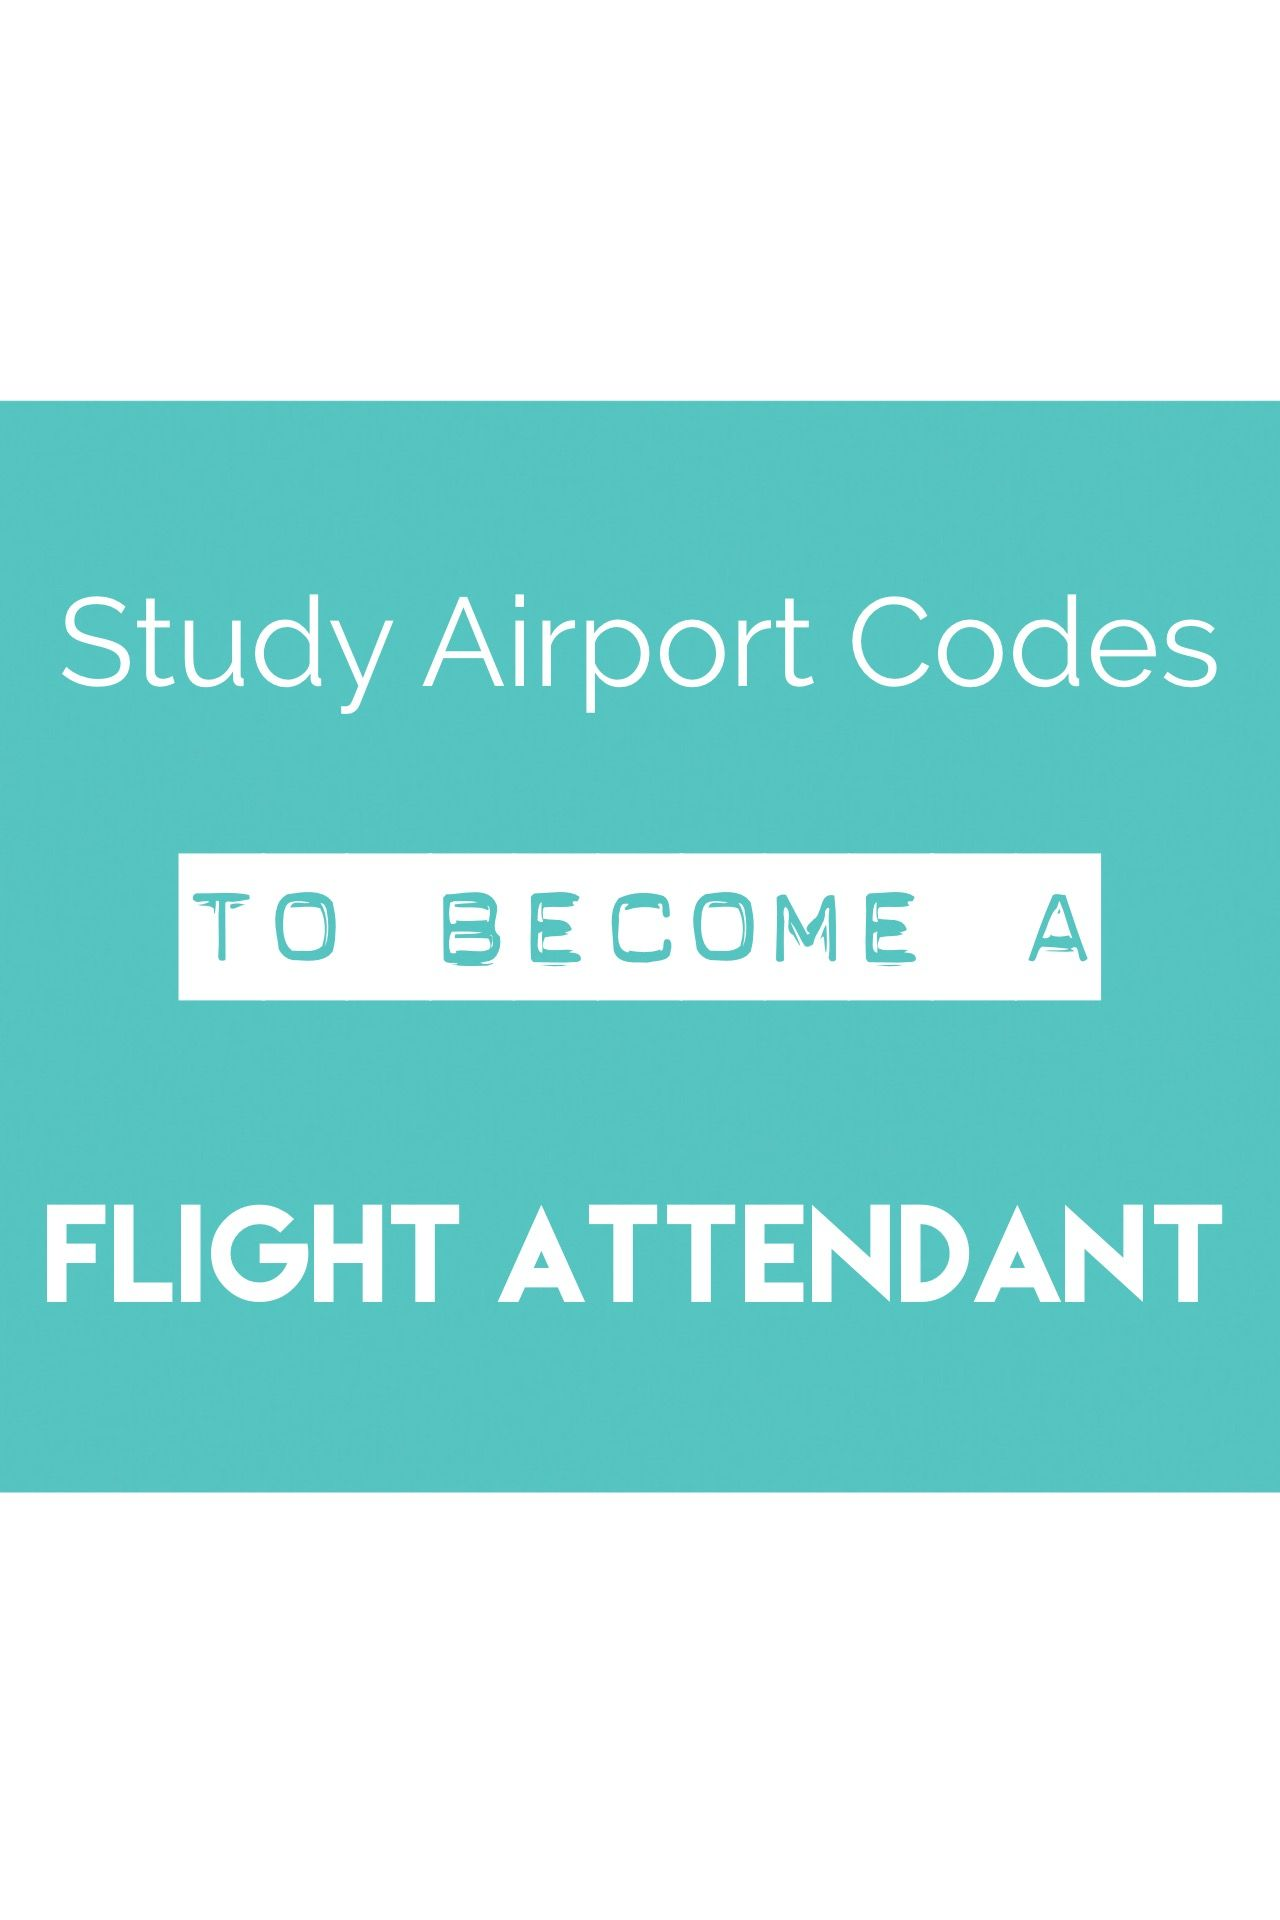 134 flight attendant interview questions and answers pdf getting learn your airport codes before training